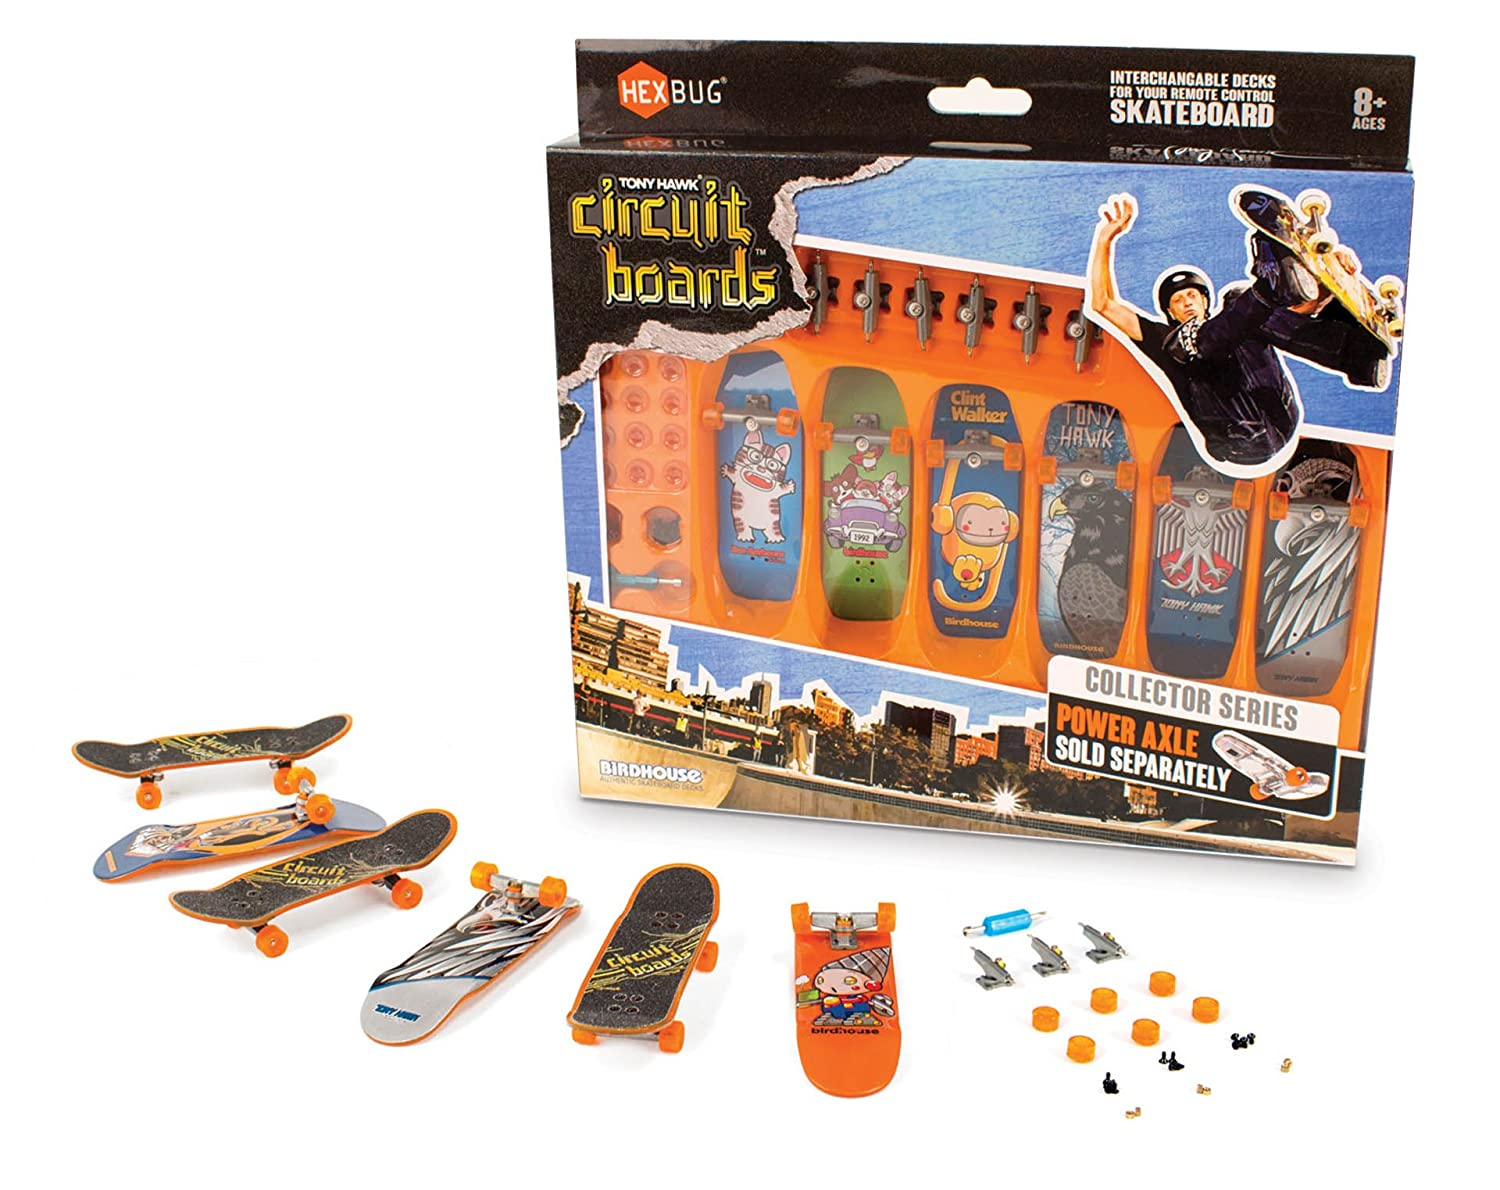 HexBug Circuit Fingerboard Set